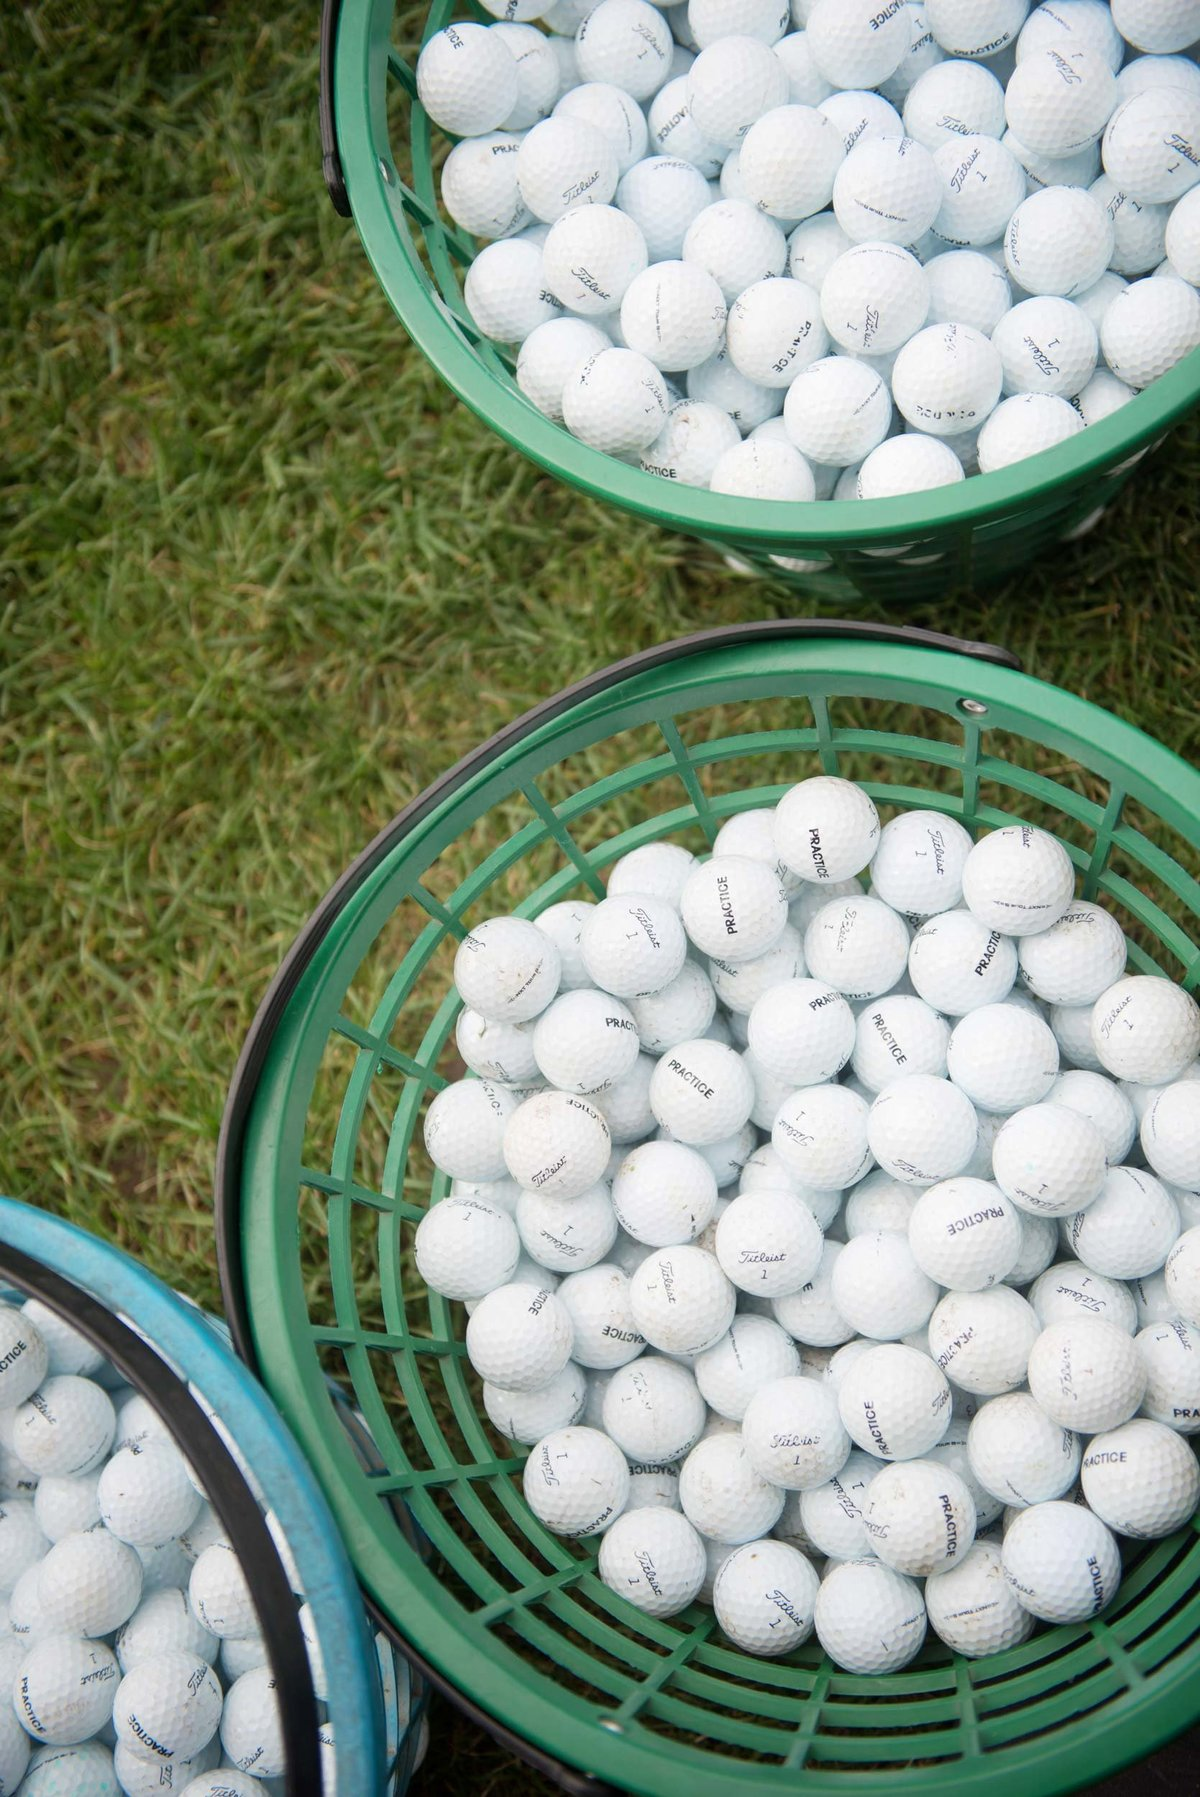 Buckets of golf balls at Huntington Crescent Club